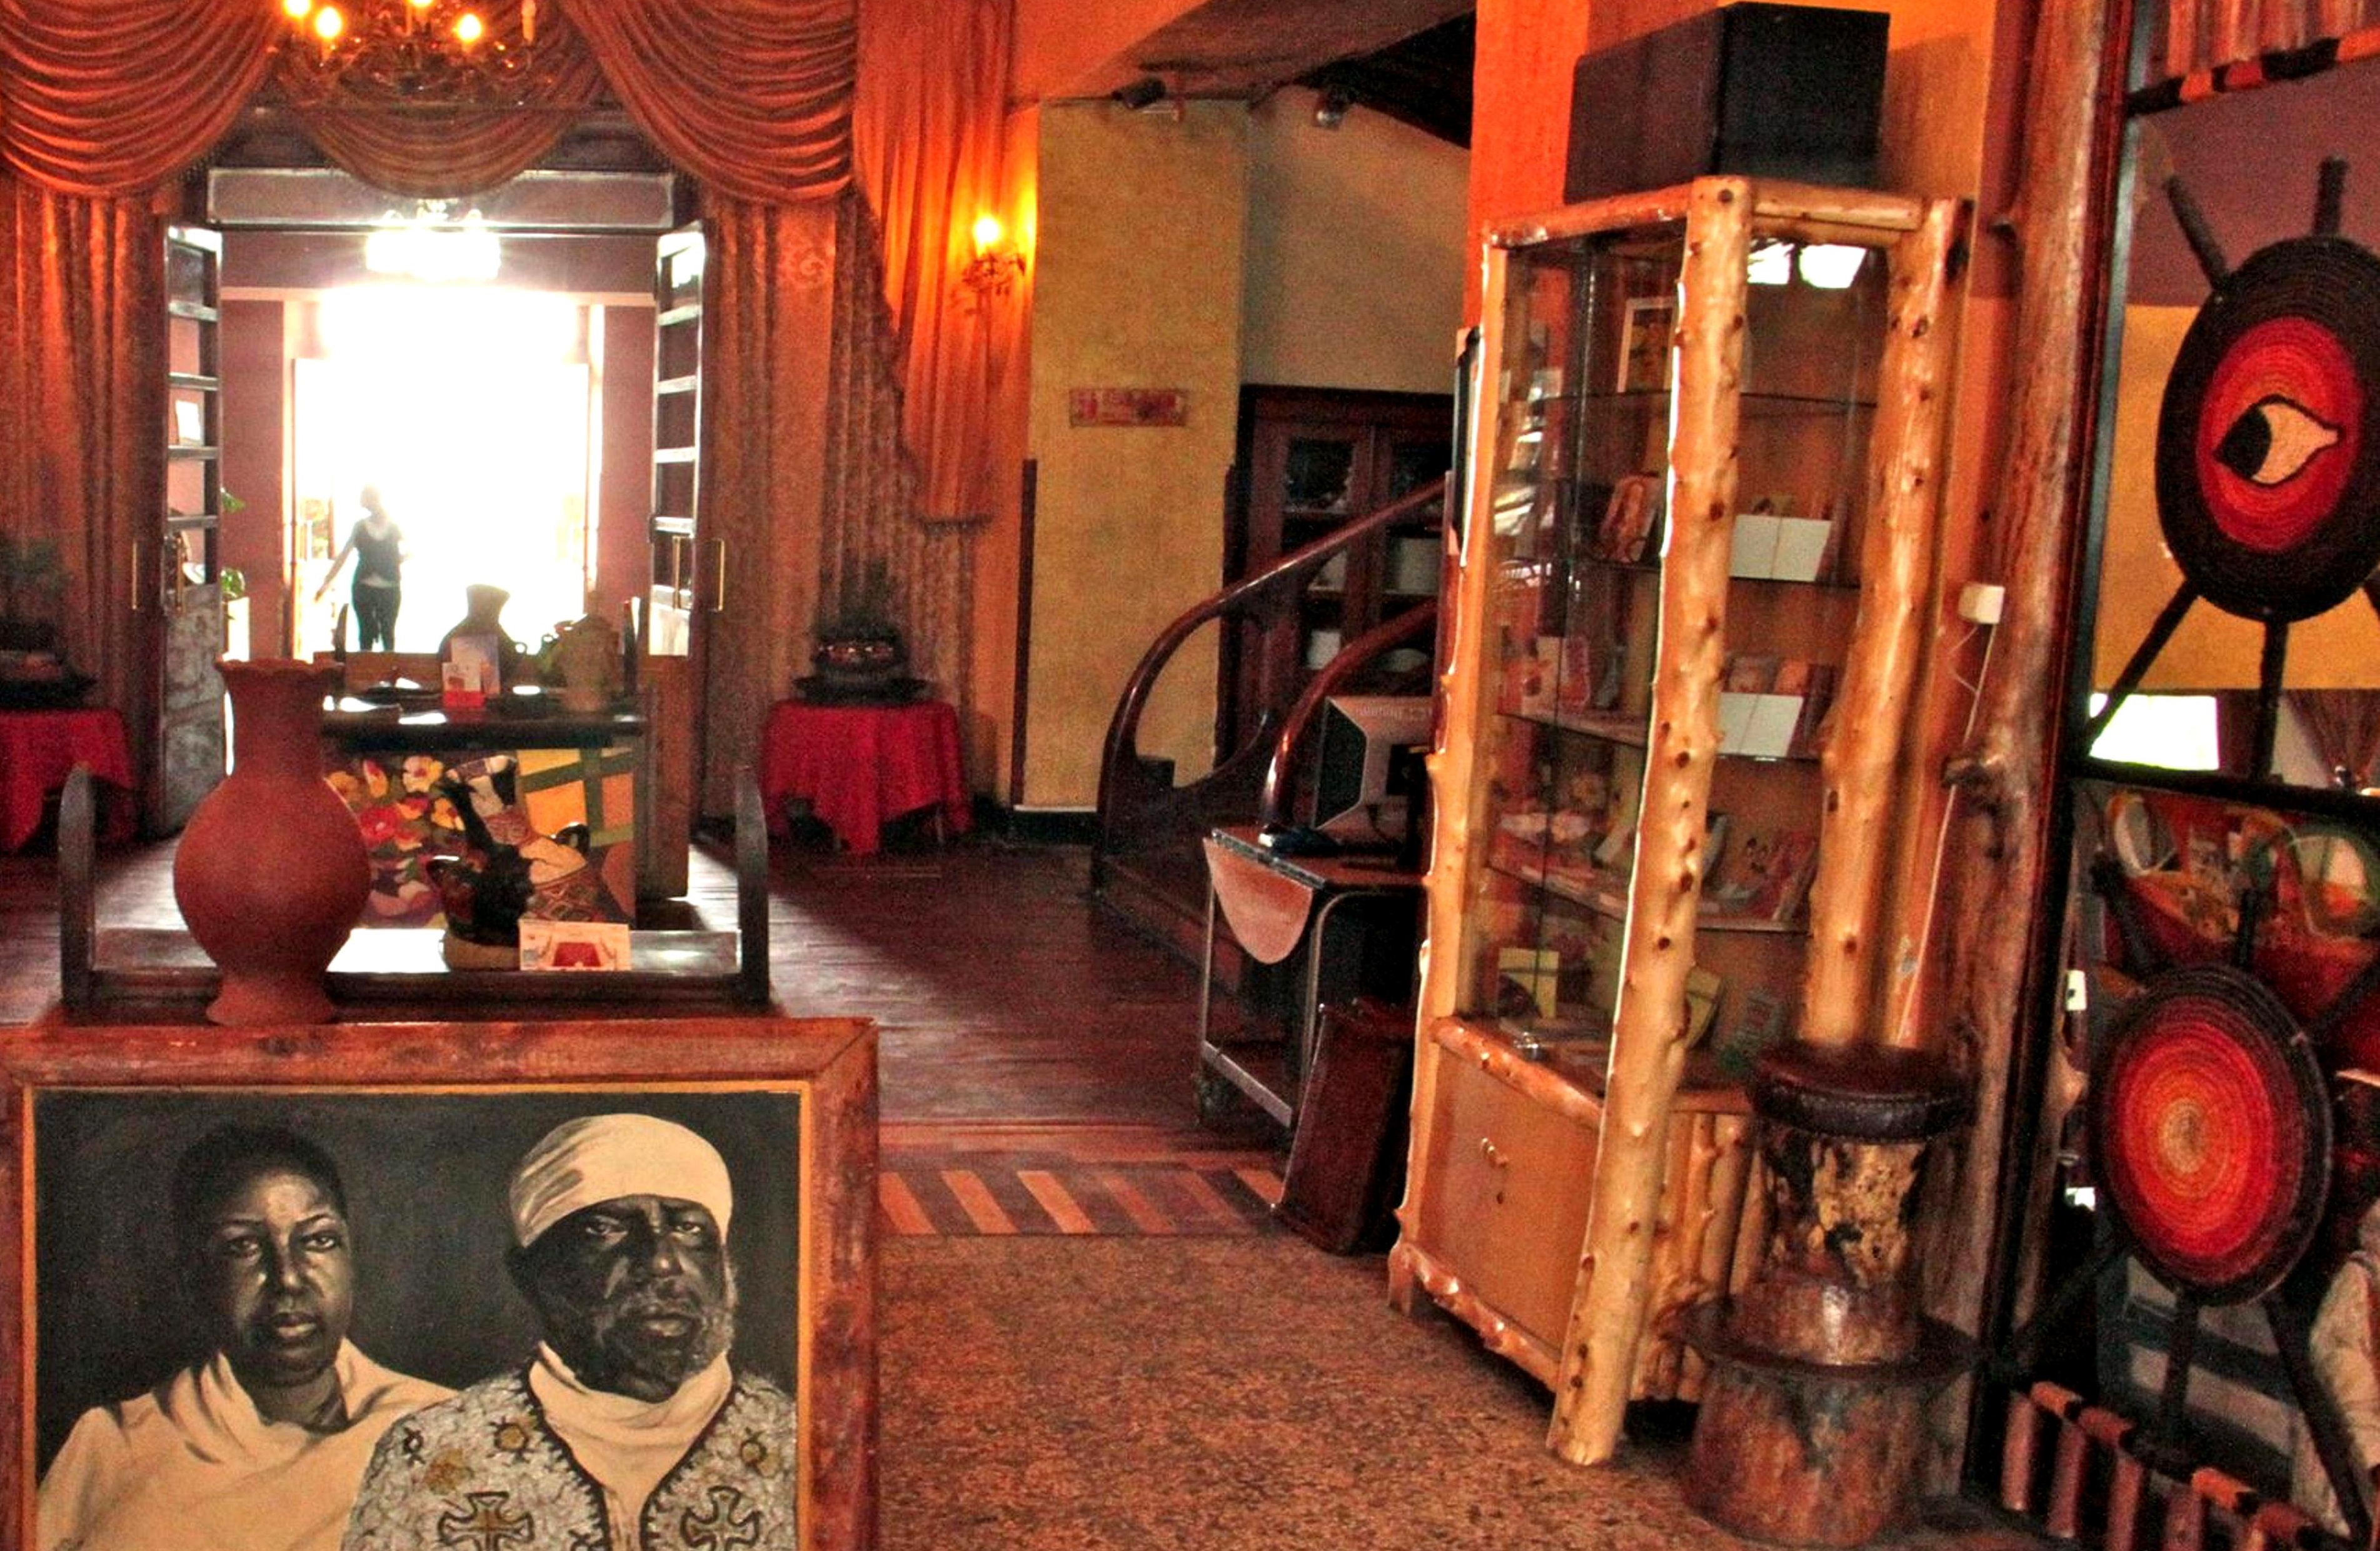 The first hotel in Ethiopia was constructed in 1898, and it is still in operation.